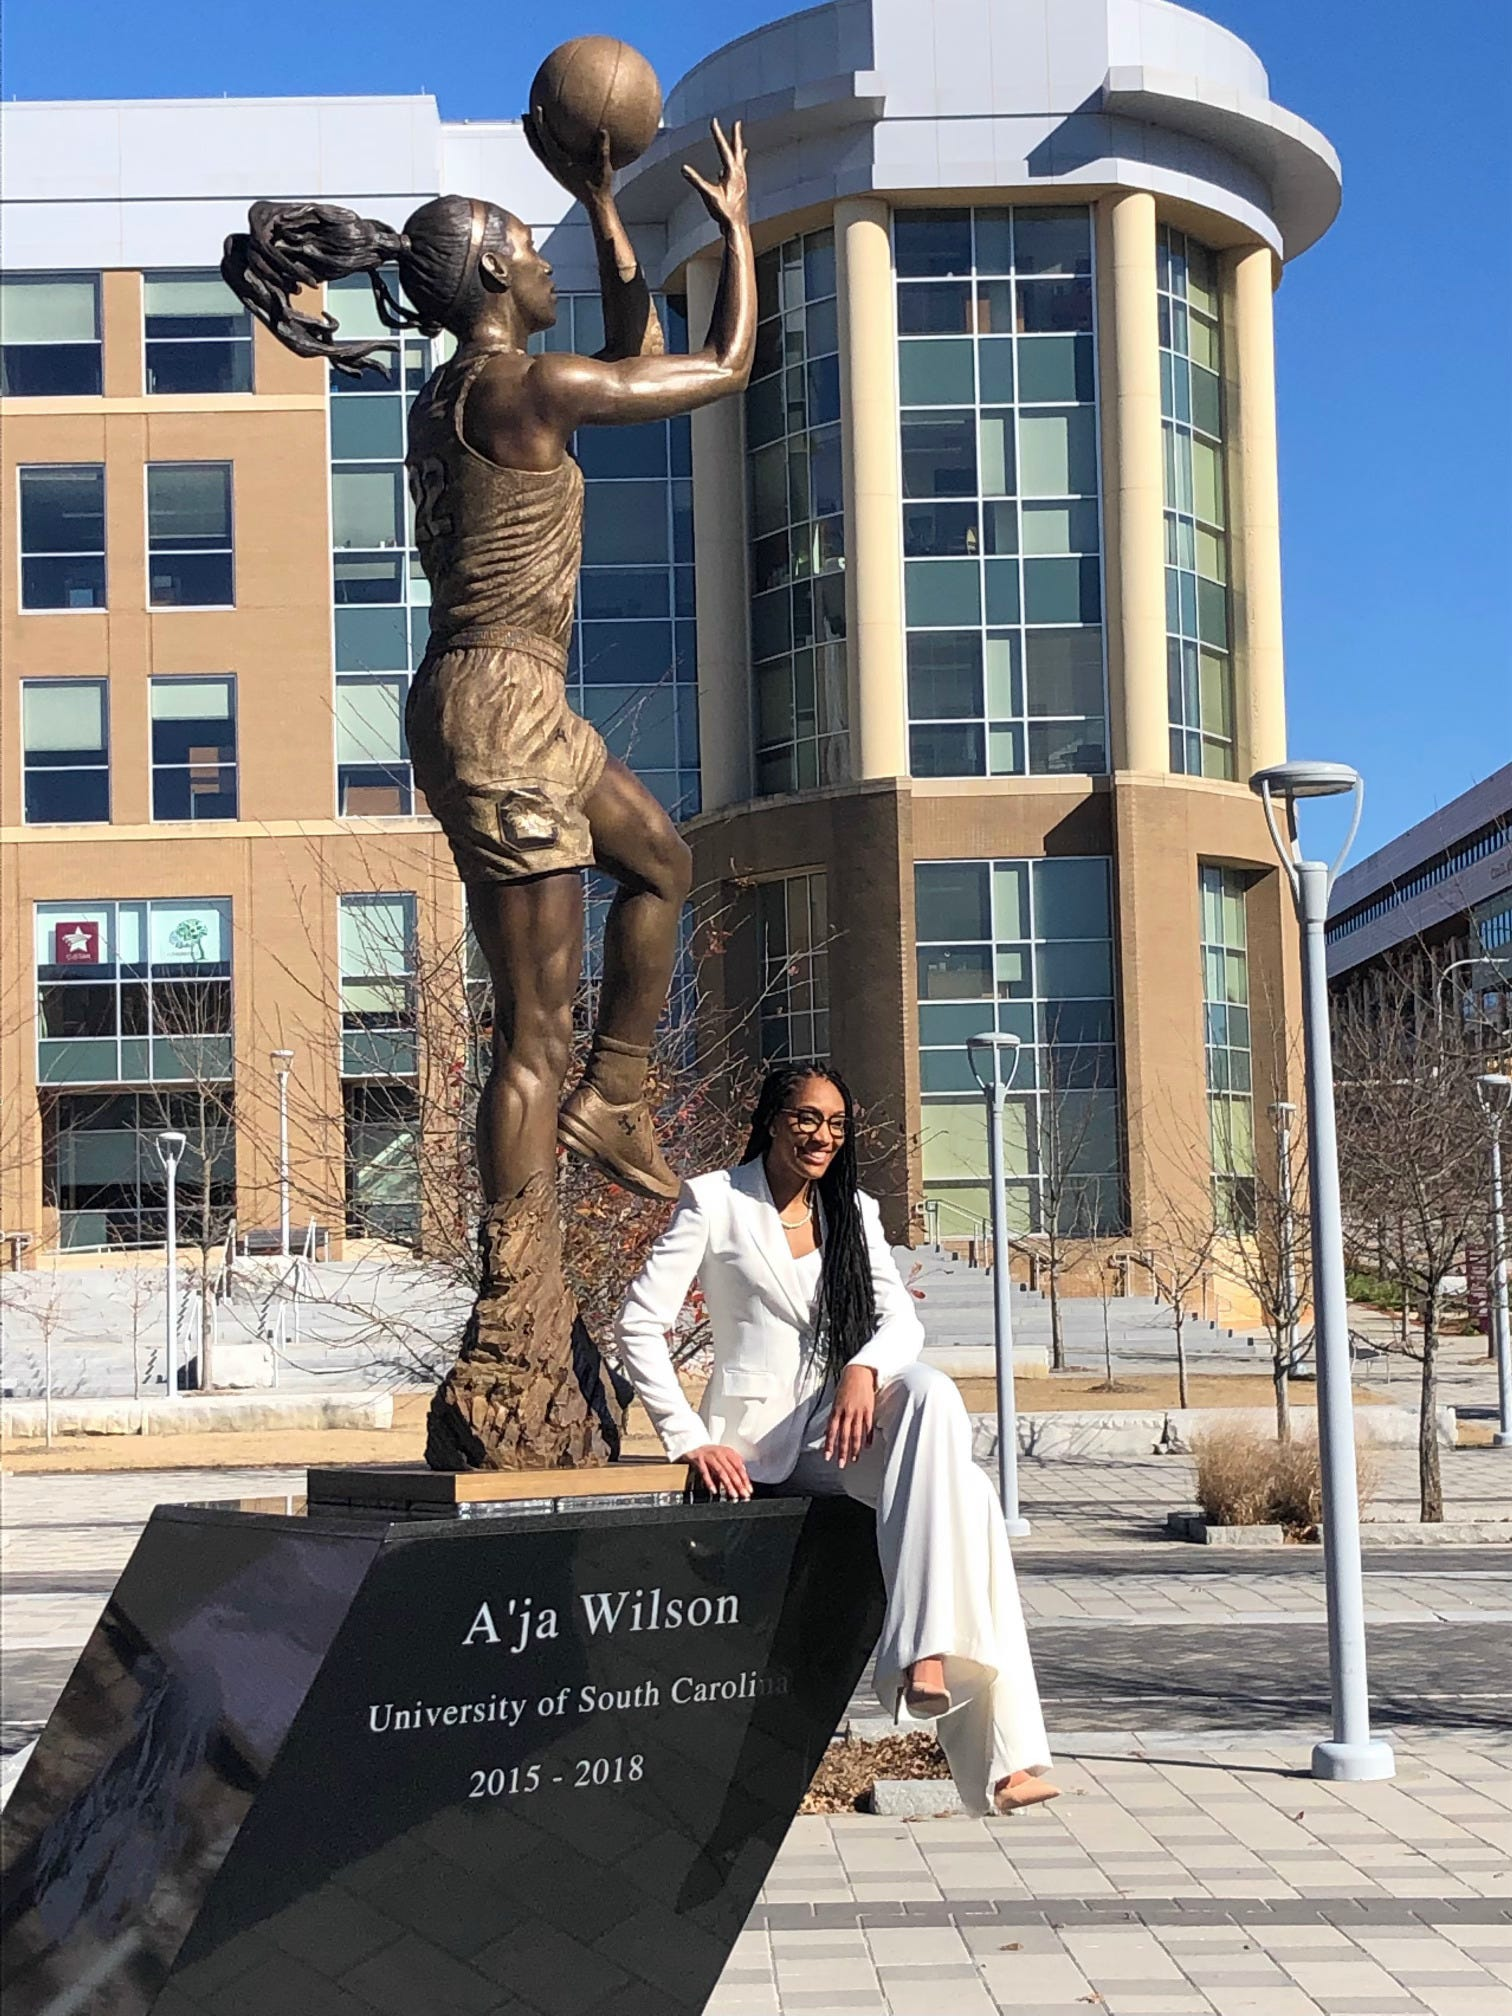 Reigning WNBA MVP A'ja Wilson gets statue for work on and off court